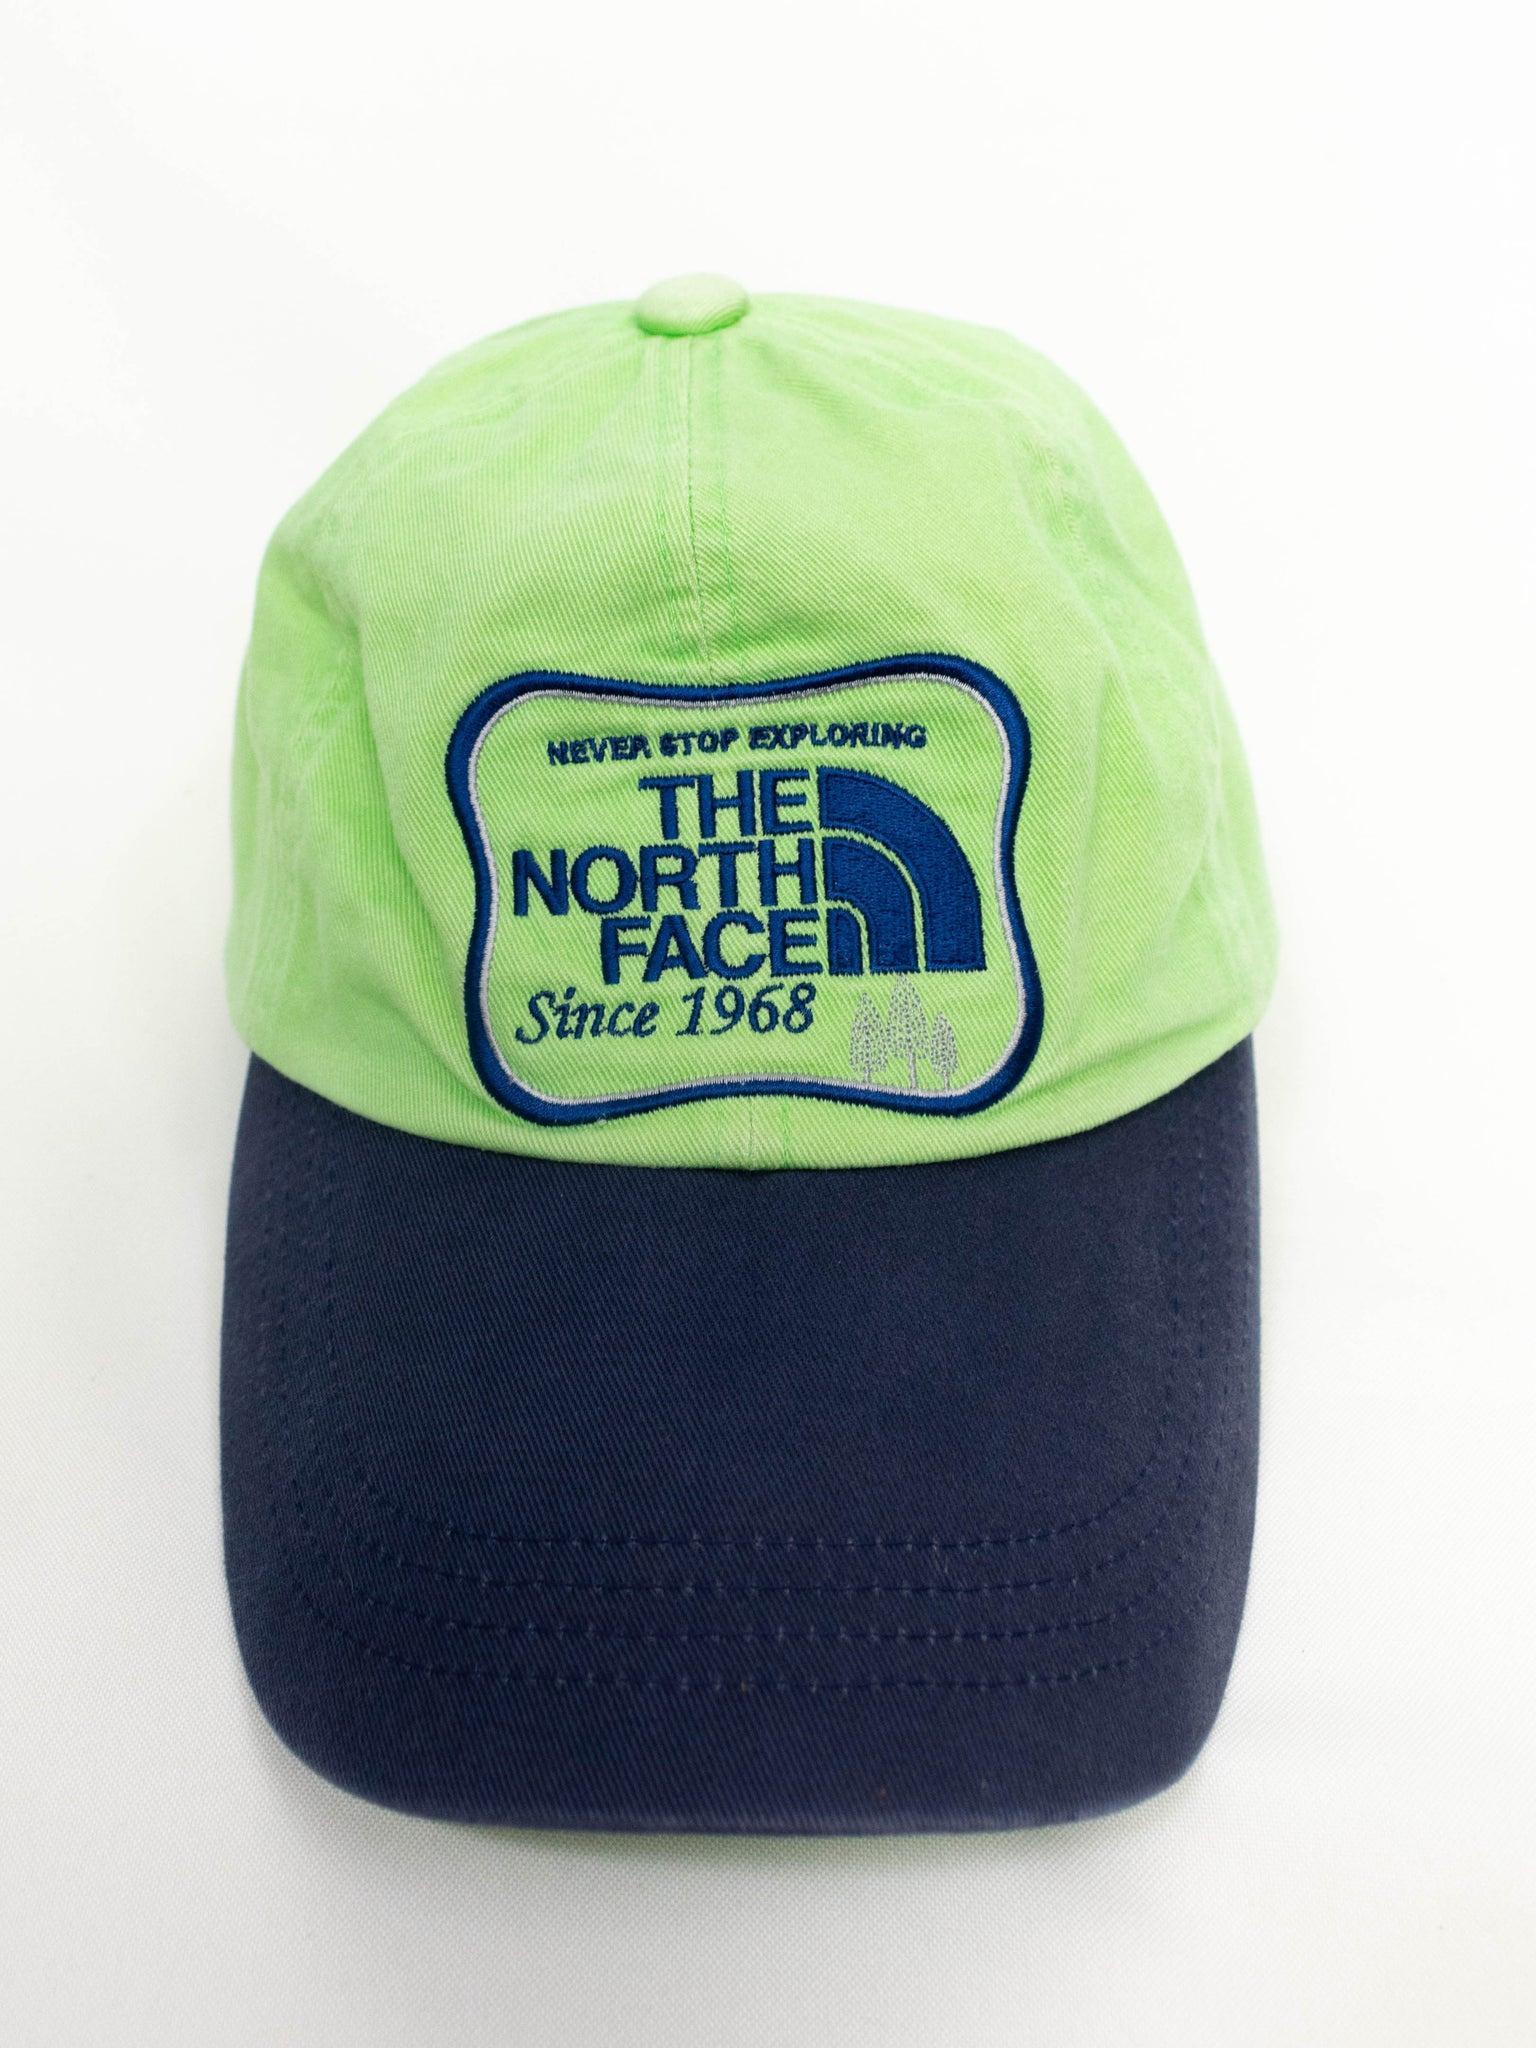 Vintage The North Face Hat